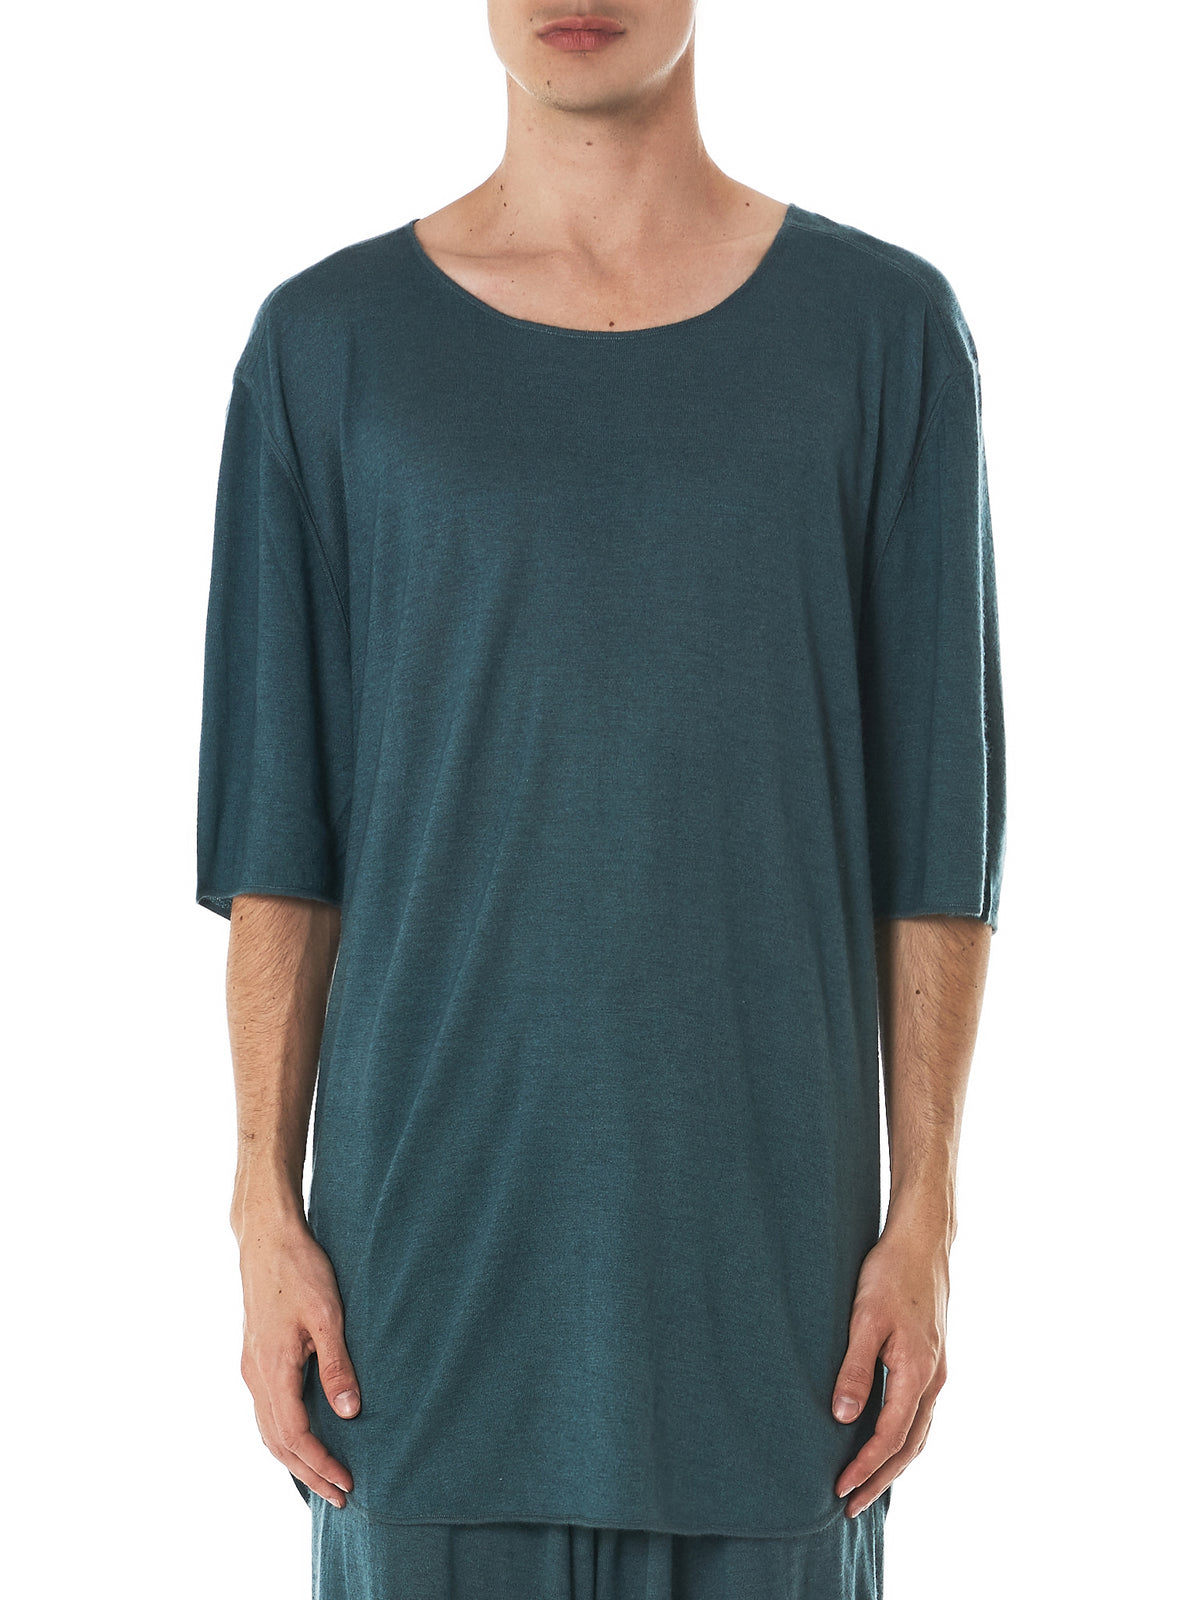 Denis Colomb Cashmere Tee - Hlorenzo front